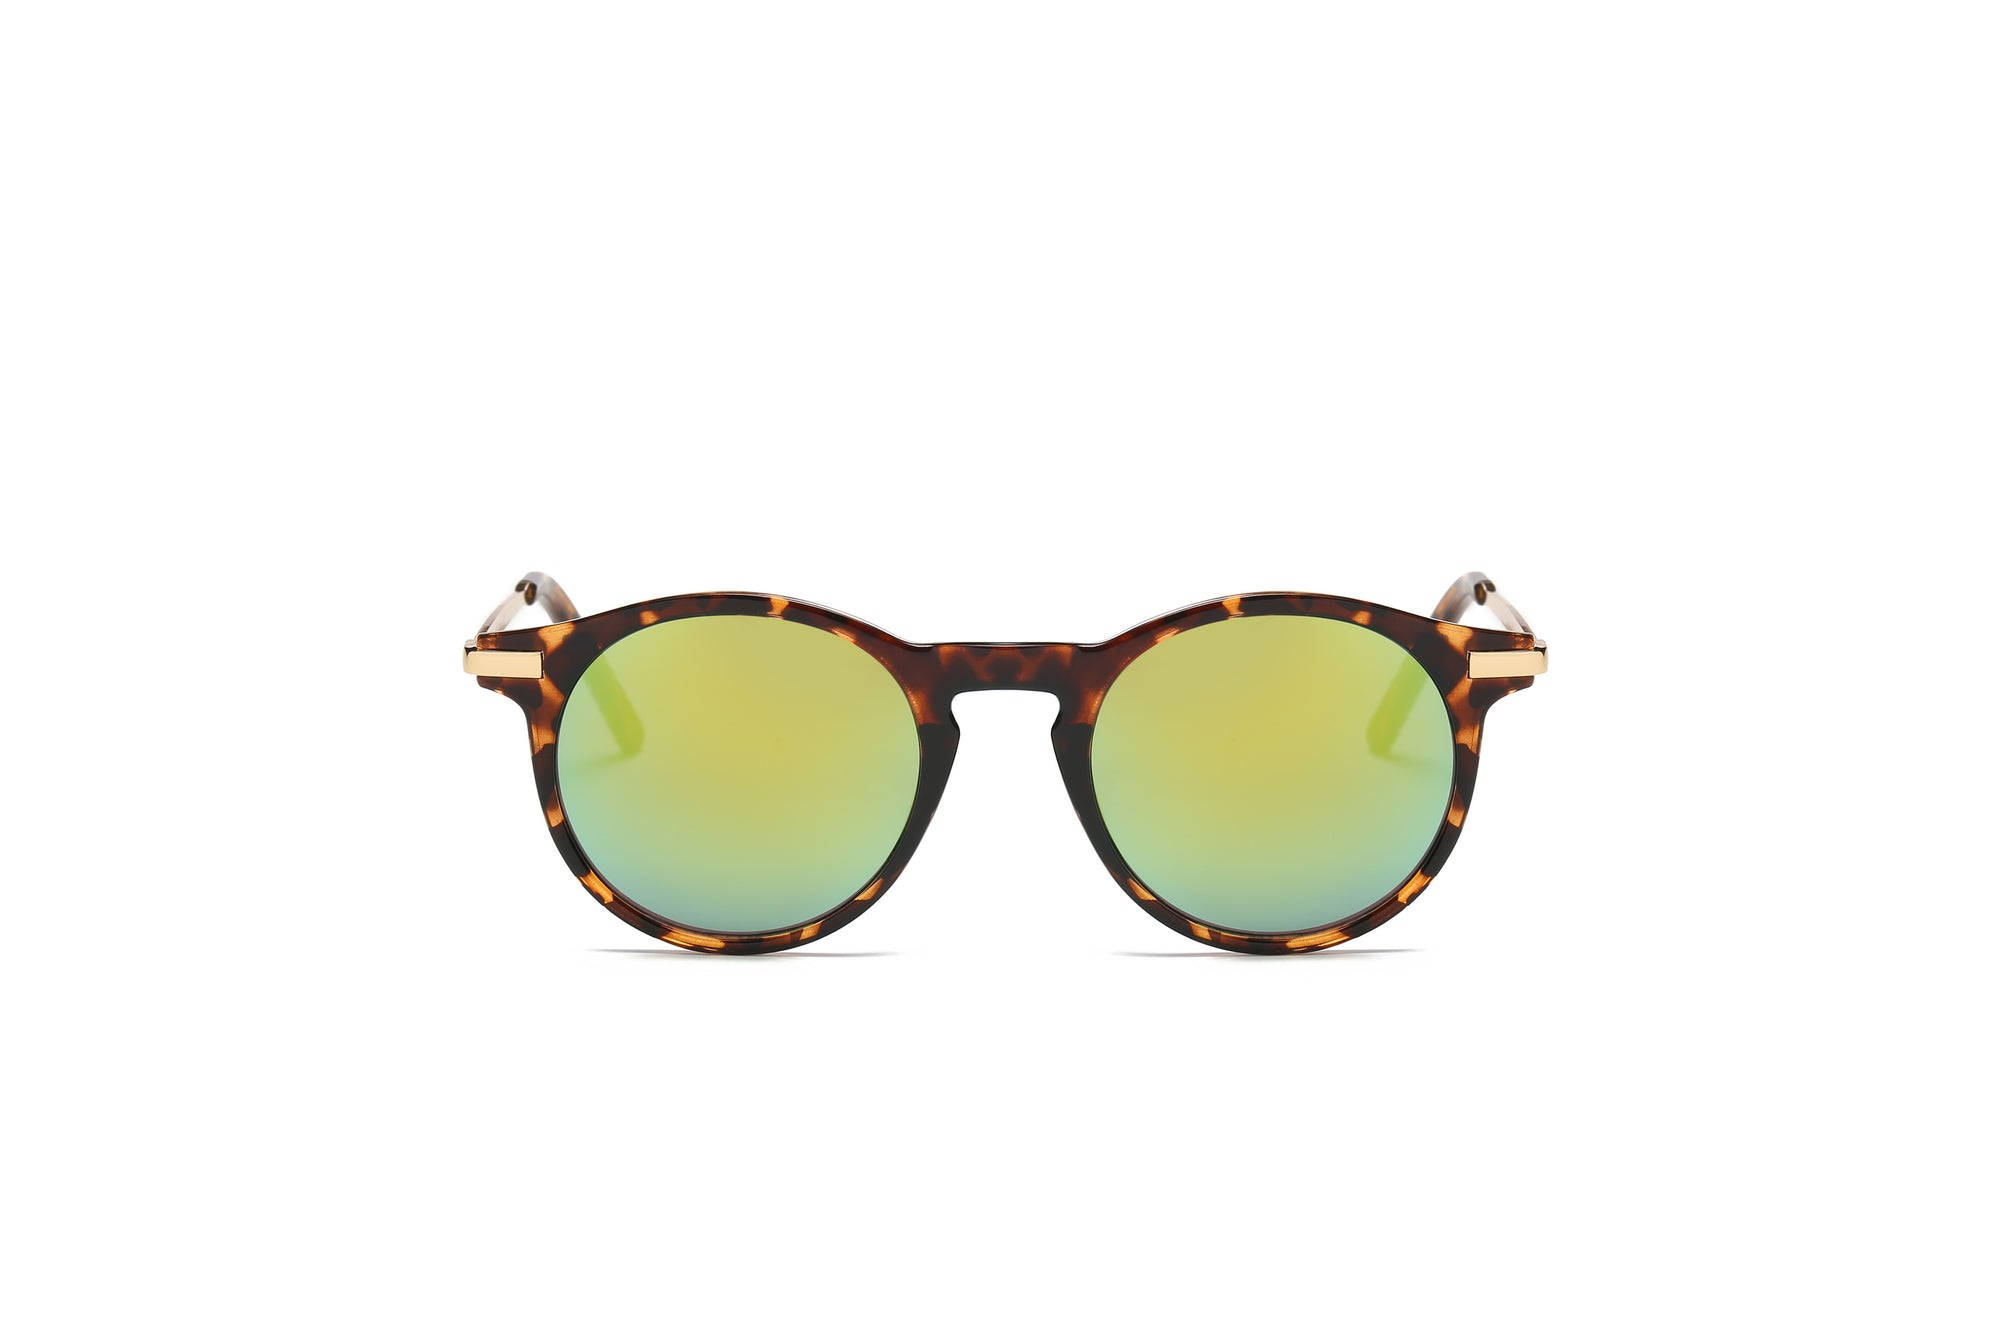 S1001 - Modern Round P3 Golden Mirrored Lens Sunglasses - Wholesale Sunglasses and glasses